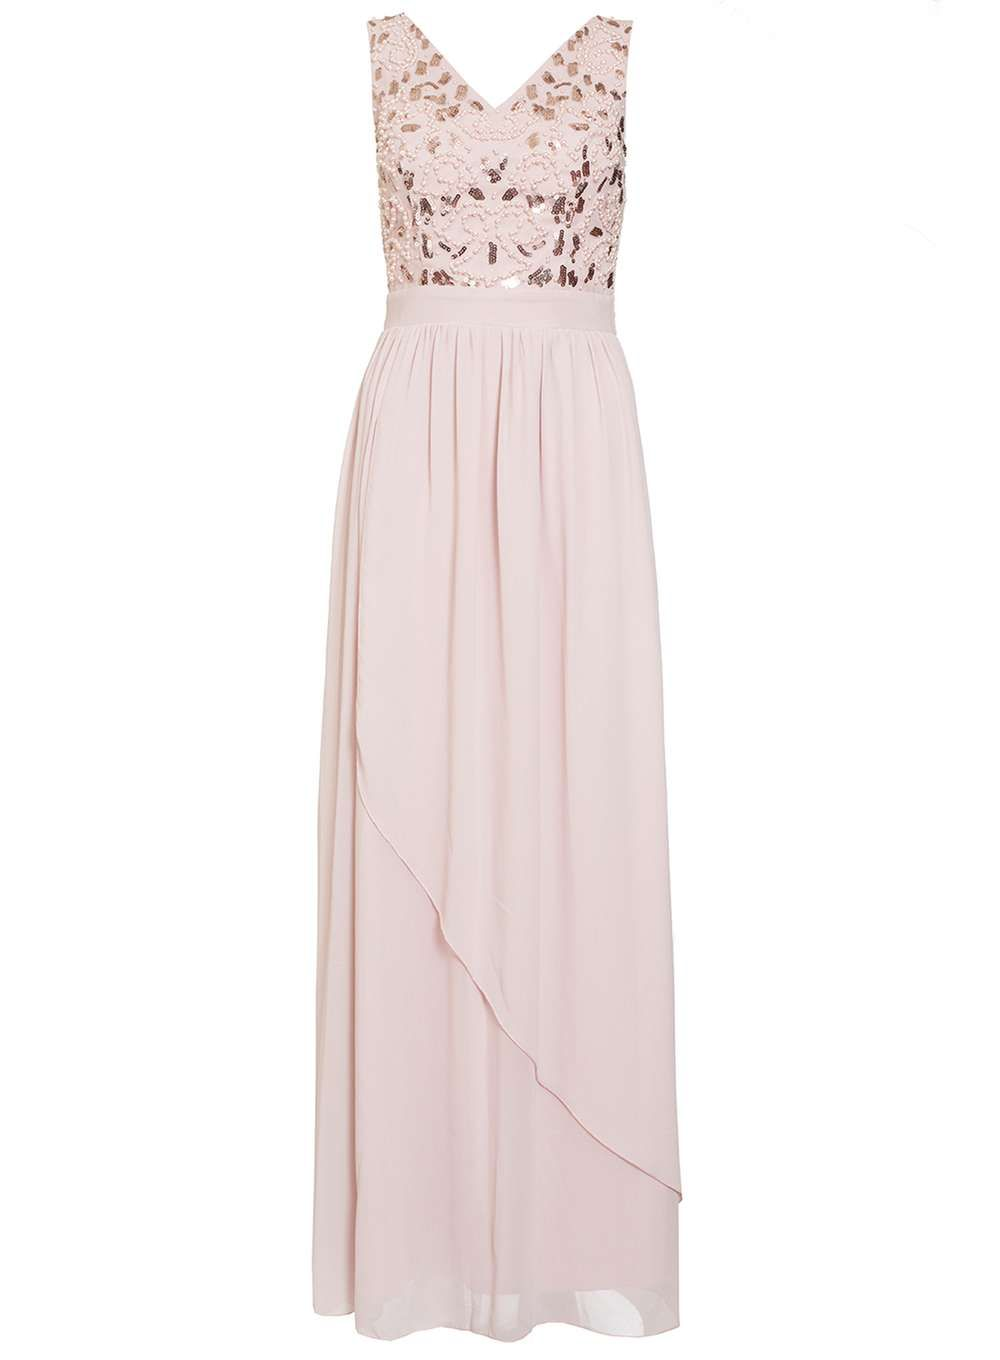 Pink v neck maxi dress  Quiz Pink Waterfall VNeck Maxi Dress  Products